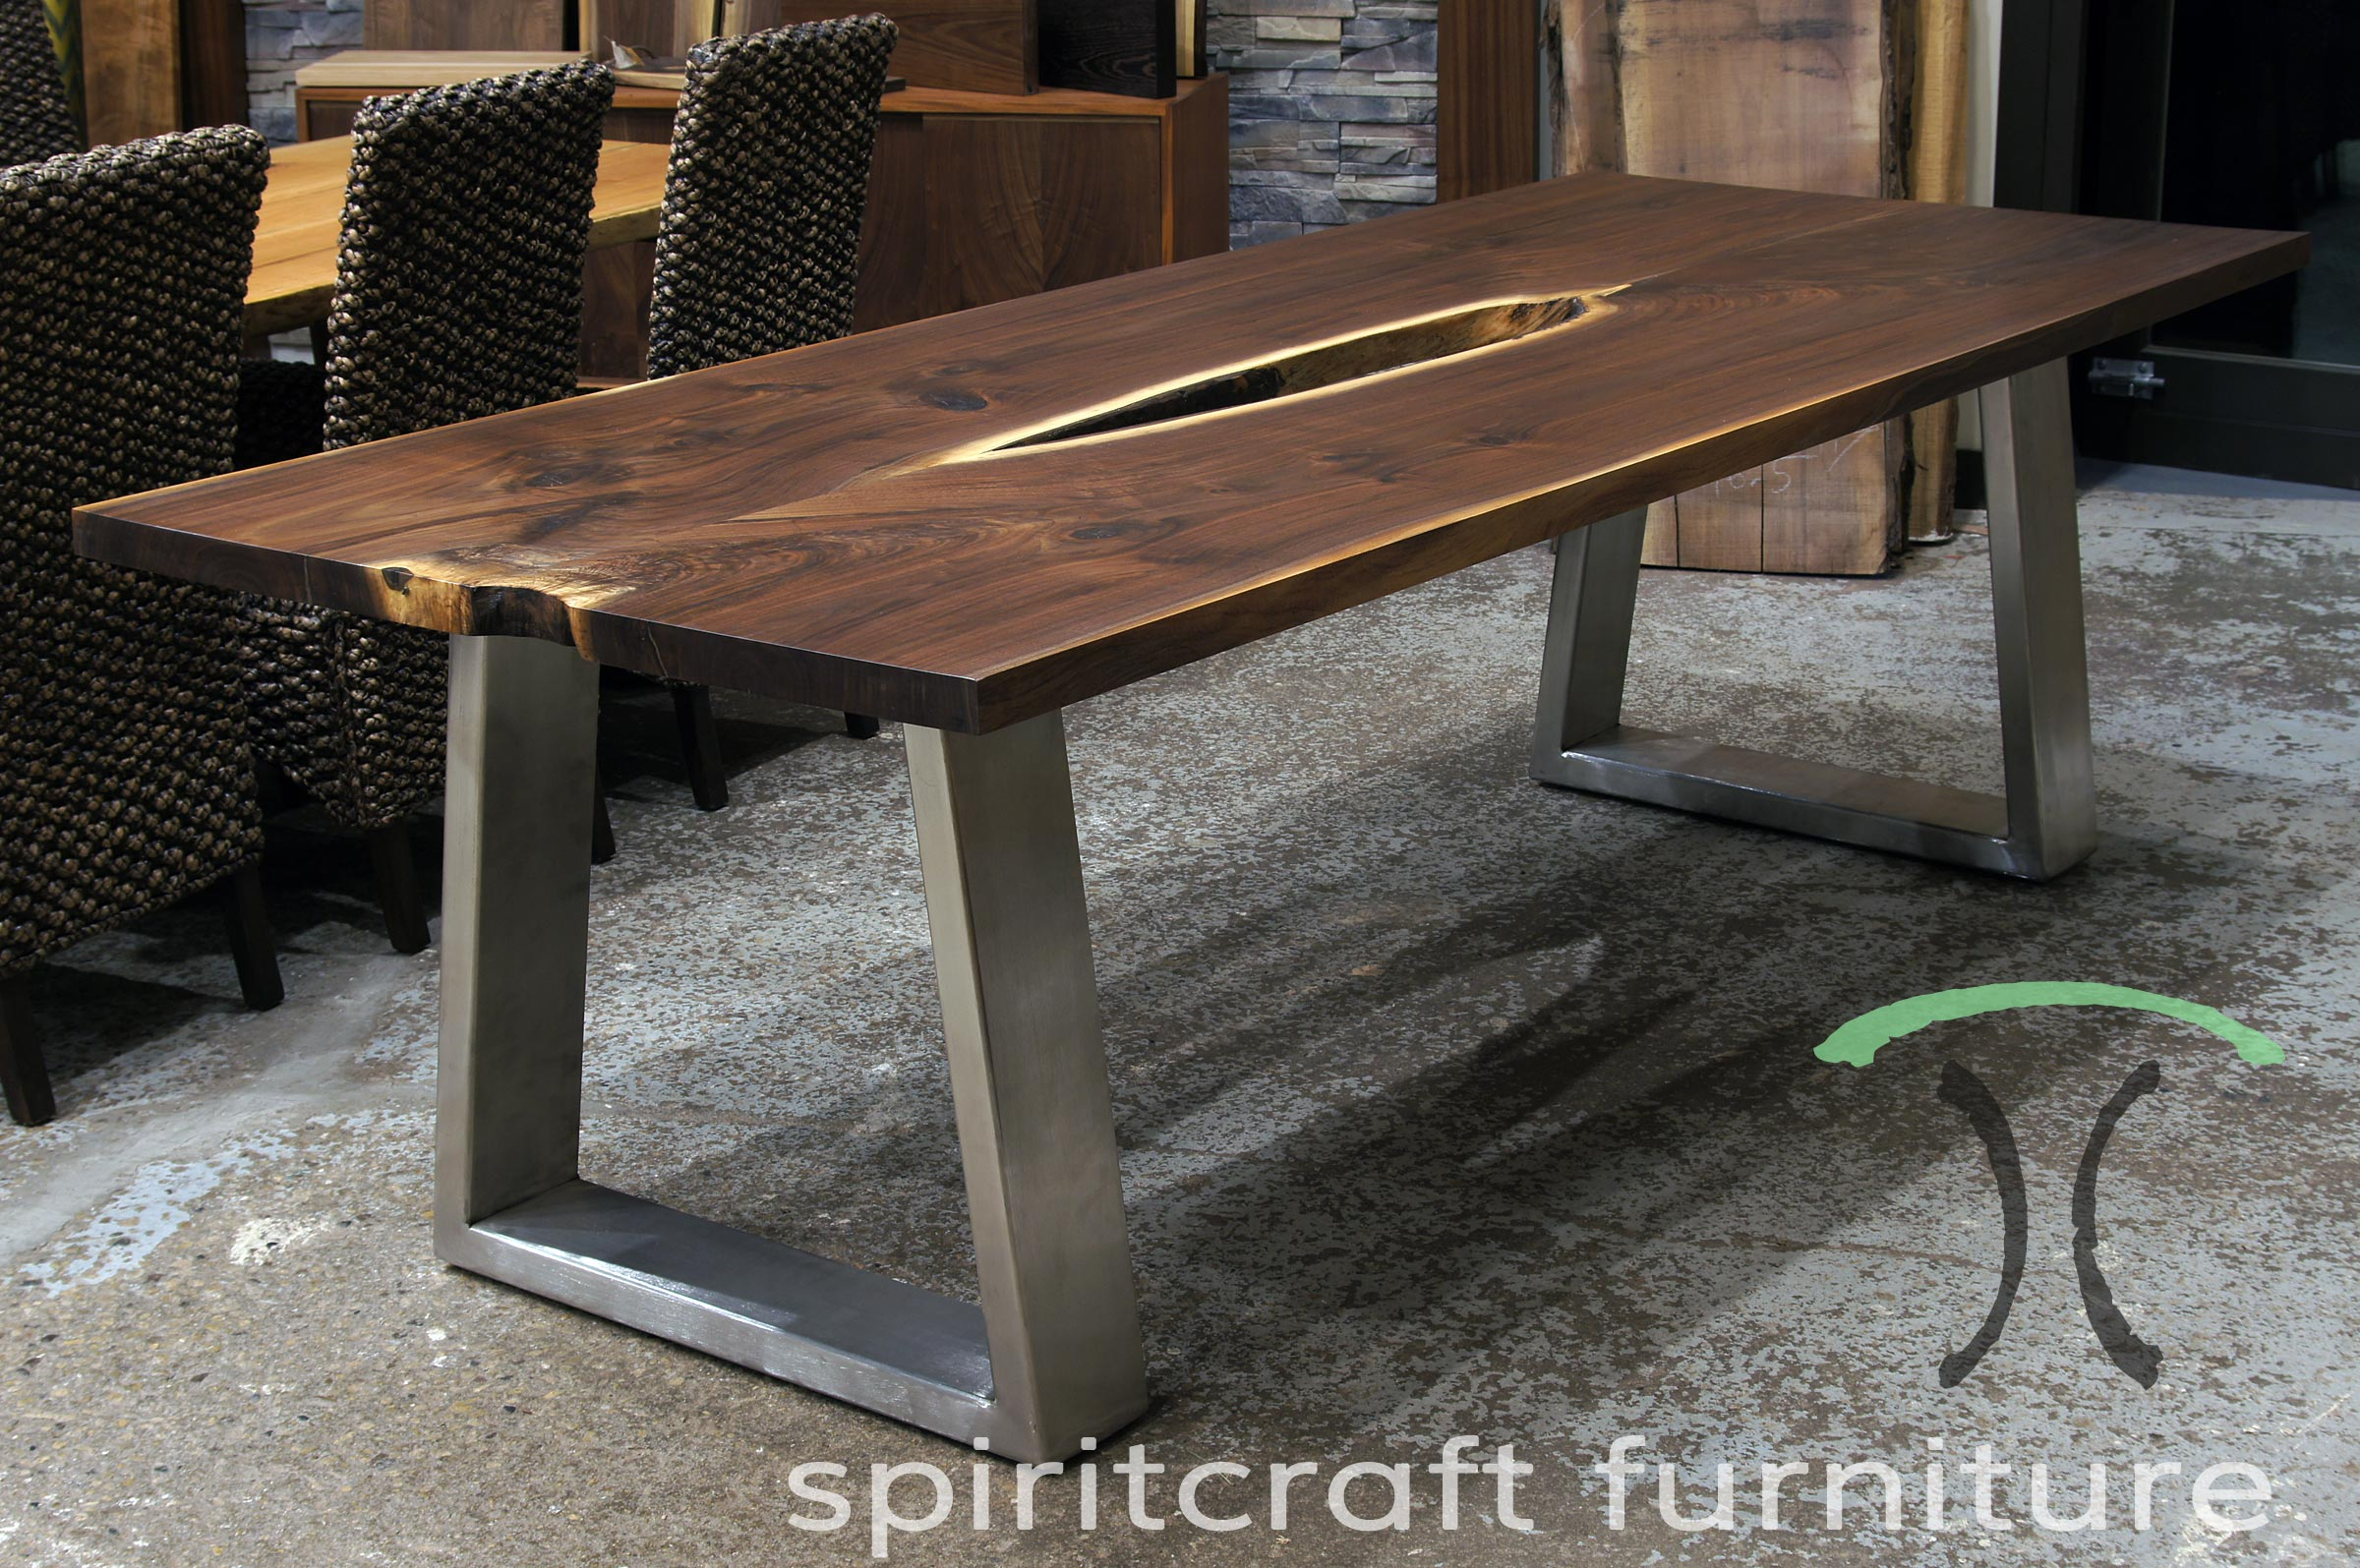 Black Walnut Live Edge Desk - Table with Large Profile Stainless Steel Legs for Chicago client in Naperville, Illinois Office.